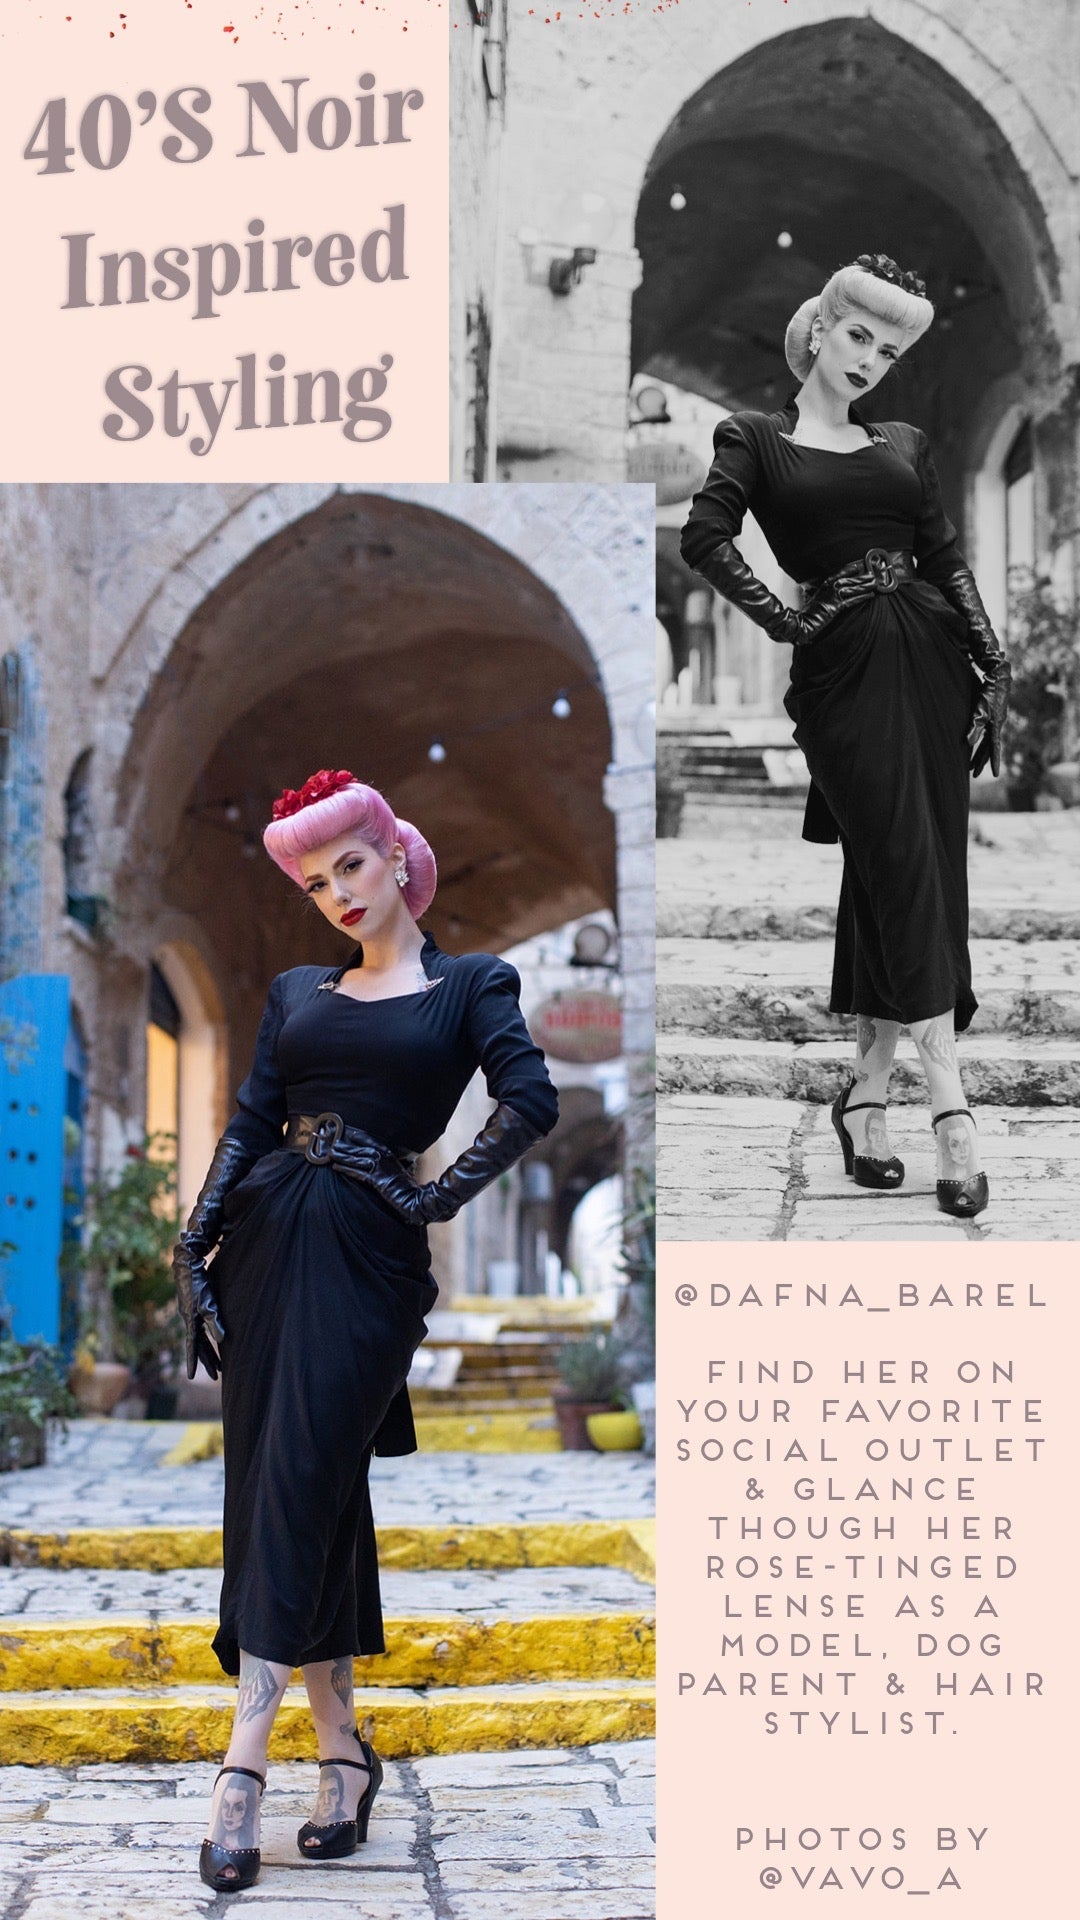 text: 40's Noir inspired styling photo on the left hand side under the title, dafna stands in a narrow alley, surrounded by stone archways & brightly colored doors, a bright contrast to dafna herself, standing center in all black with her pink hair in a voluminous updo. Her outfit consists of a lightly draped black 40's dress, with a faux-leather belt, gloves which match the platform 'Letty' shoe. the above photo overlaps a mirrored, black & white photo on the upper right side.  text: @dafna_barel find her on your favorite social outlet & glance through her rose-tinged lens as a model, dog parent & hair stylist. photos by @vavo_a